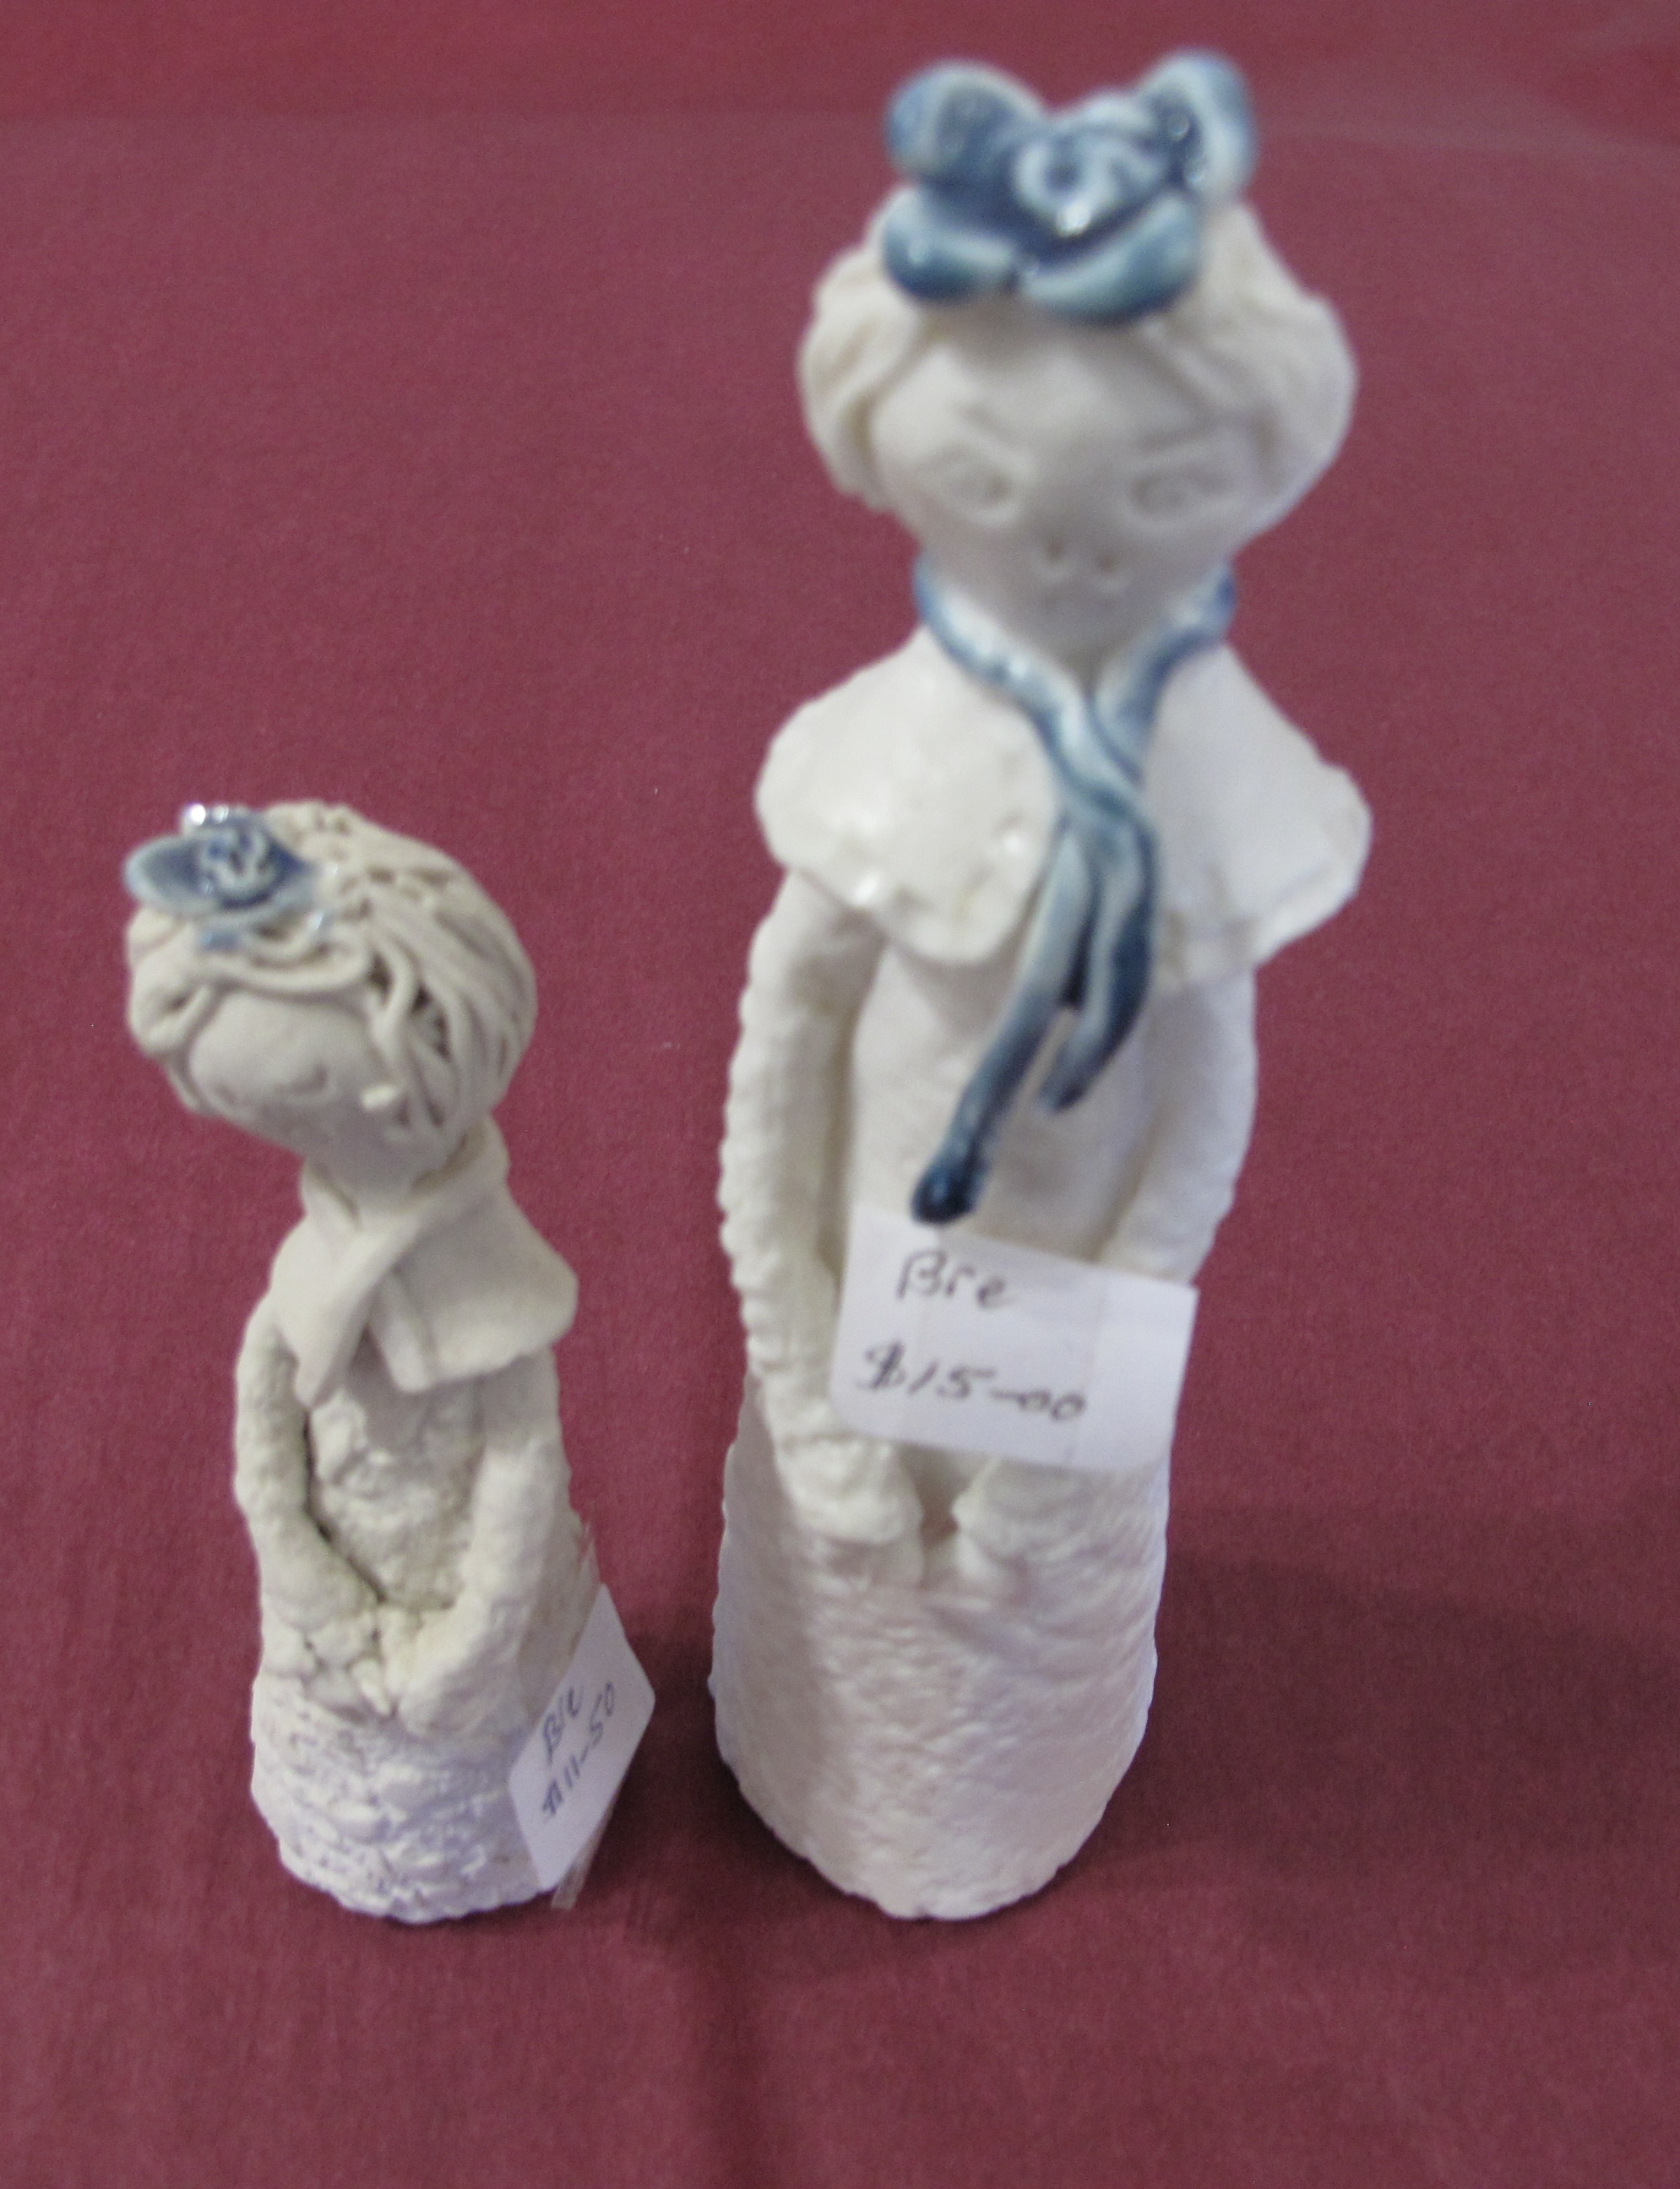 Pottery figurines